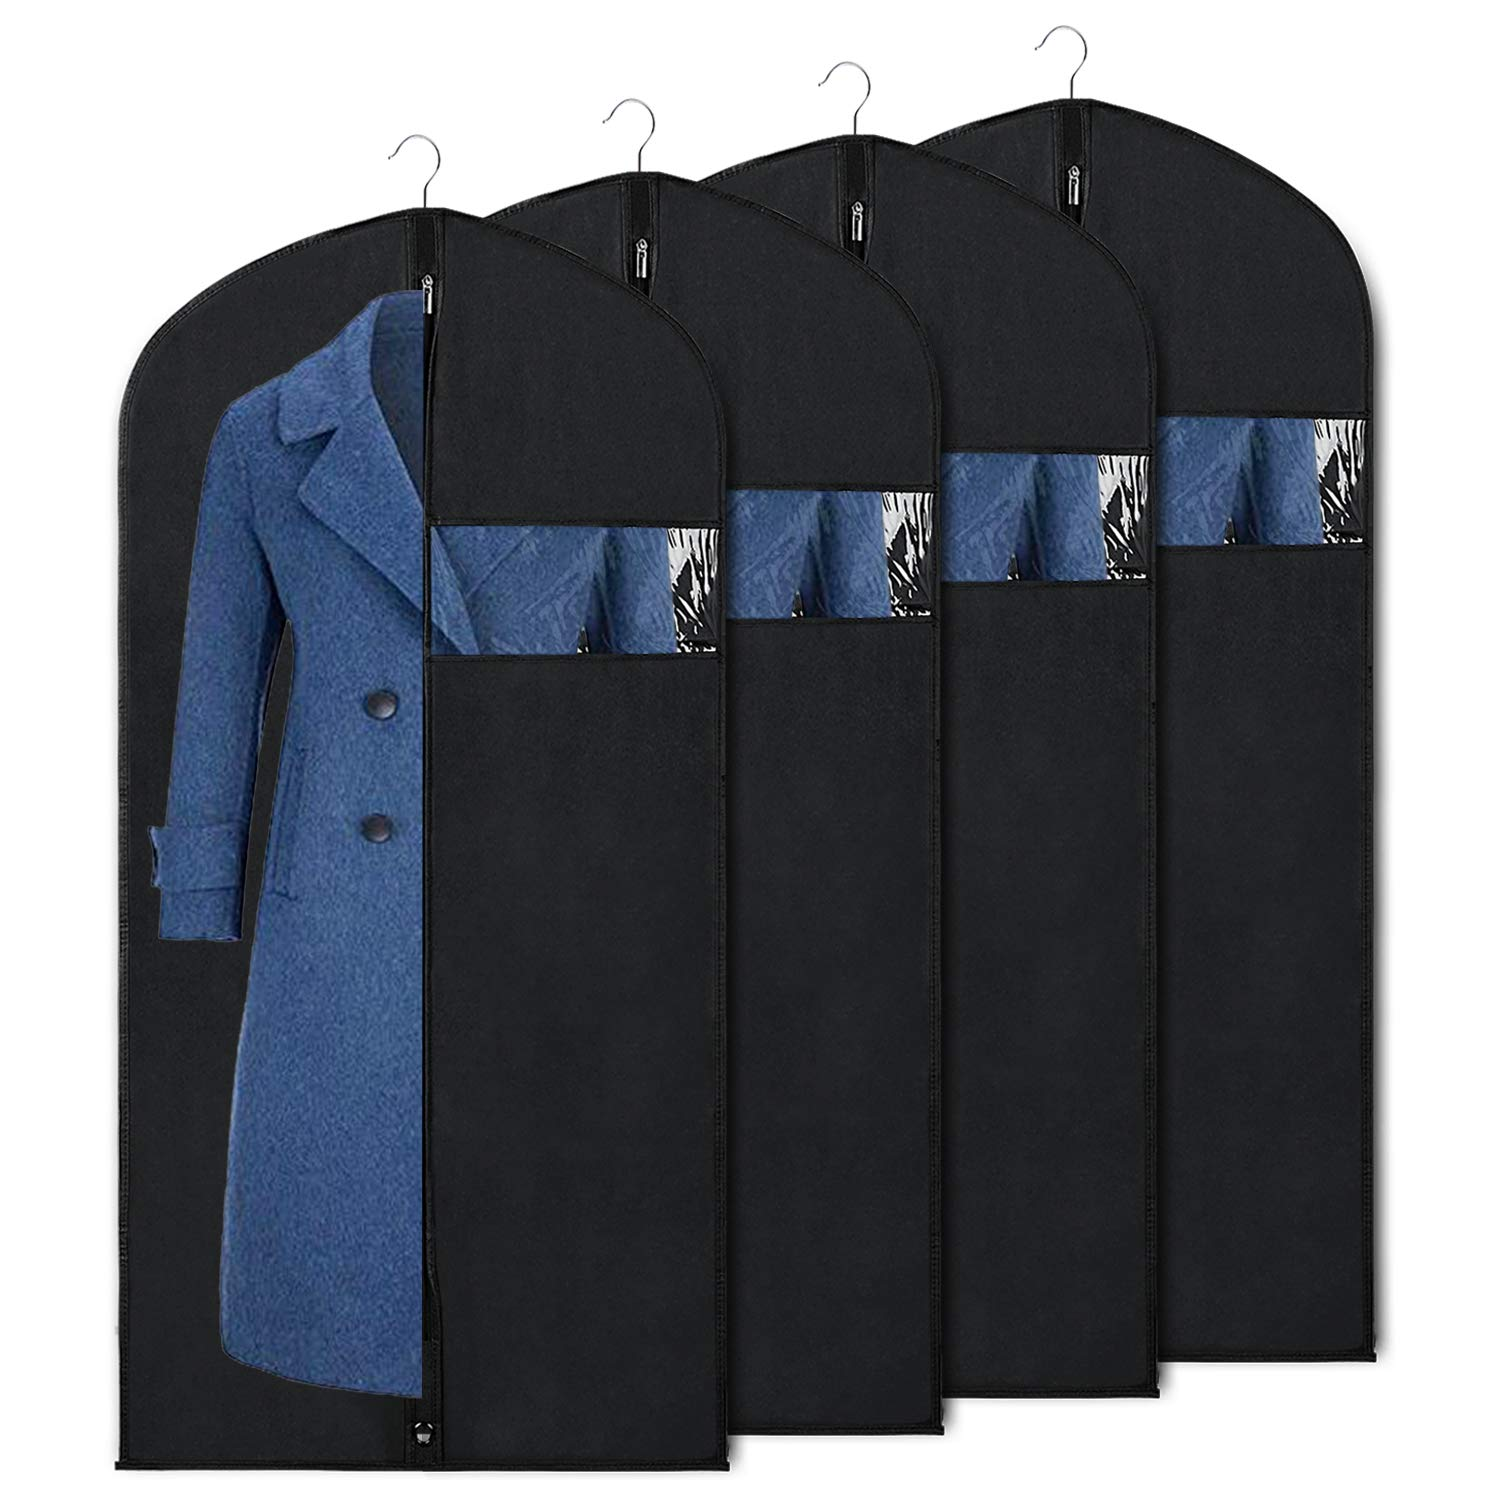 Garment Bag Suit Bags for Storage and Travel 60-inch Dust Cover Breatbable Garment Bags for Long Gowns Suits, Dresses Coats, Set of 4 Syeeiex Technology